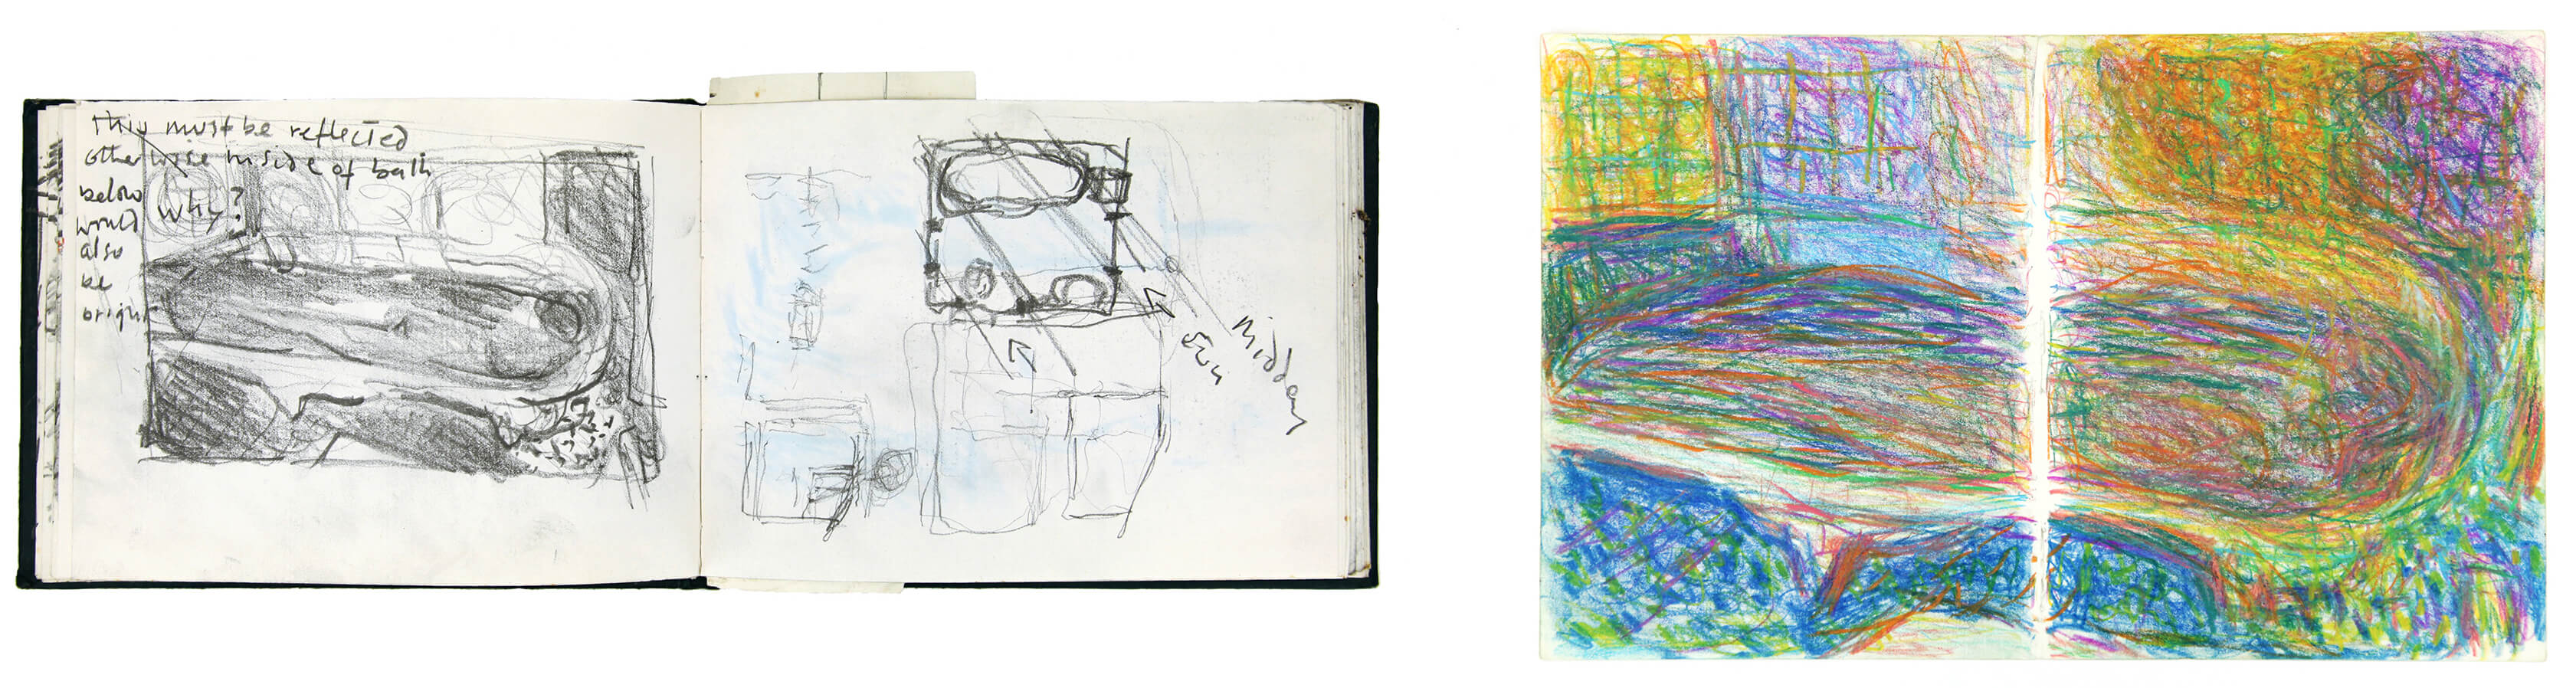 Sargy Mann, Bonnard Studies, Sketchbook, (Sargy Mann estate)